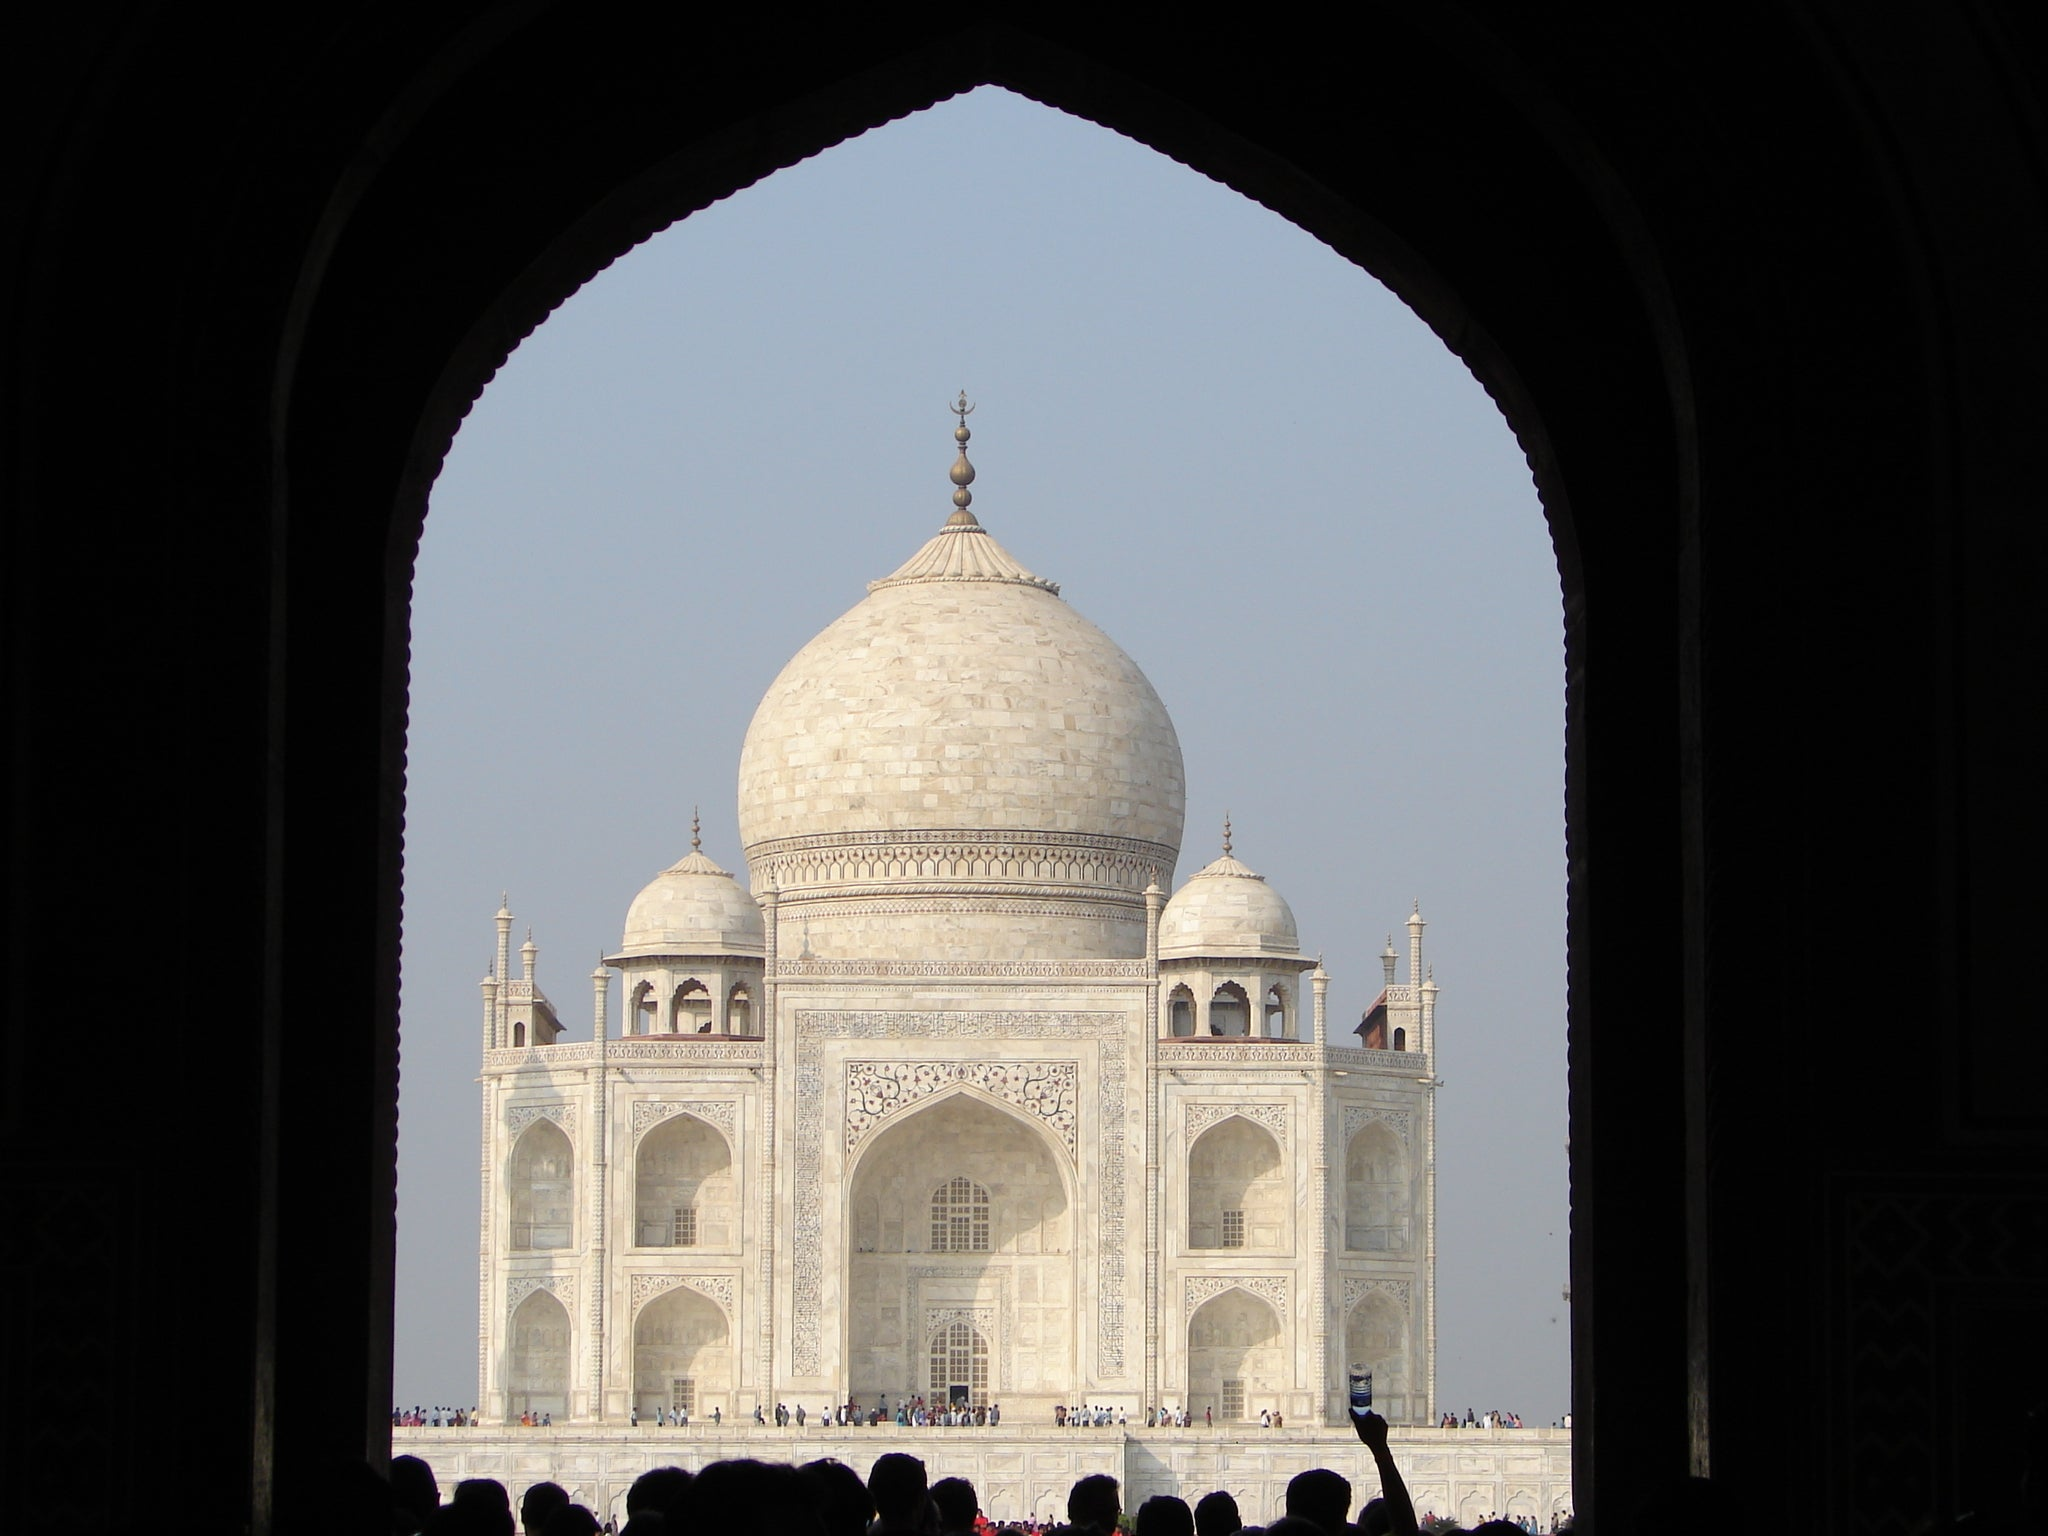 Arquitectura en Taj Mahal